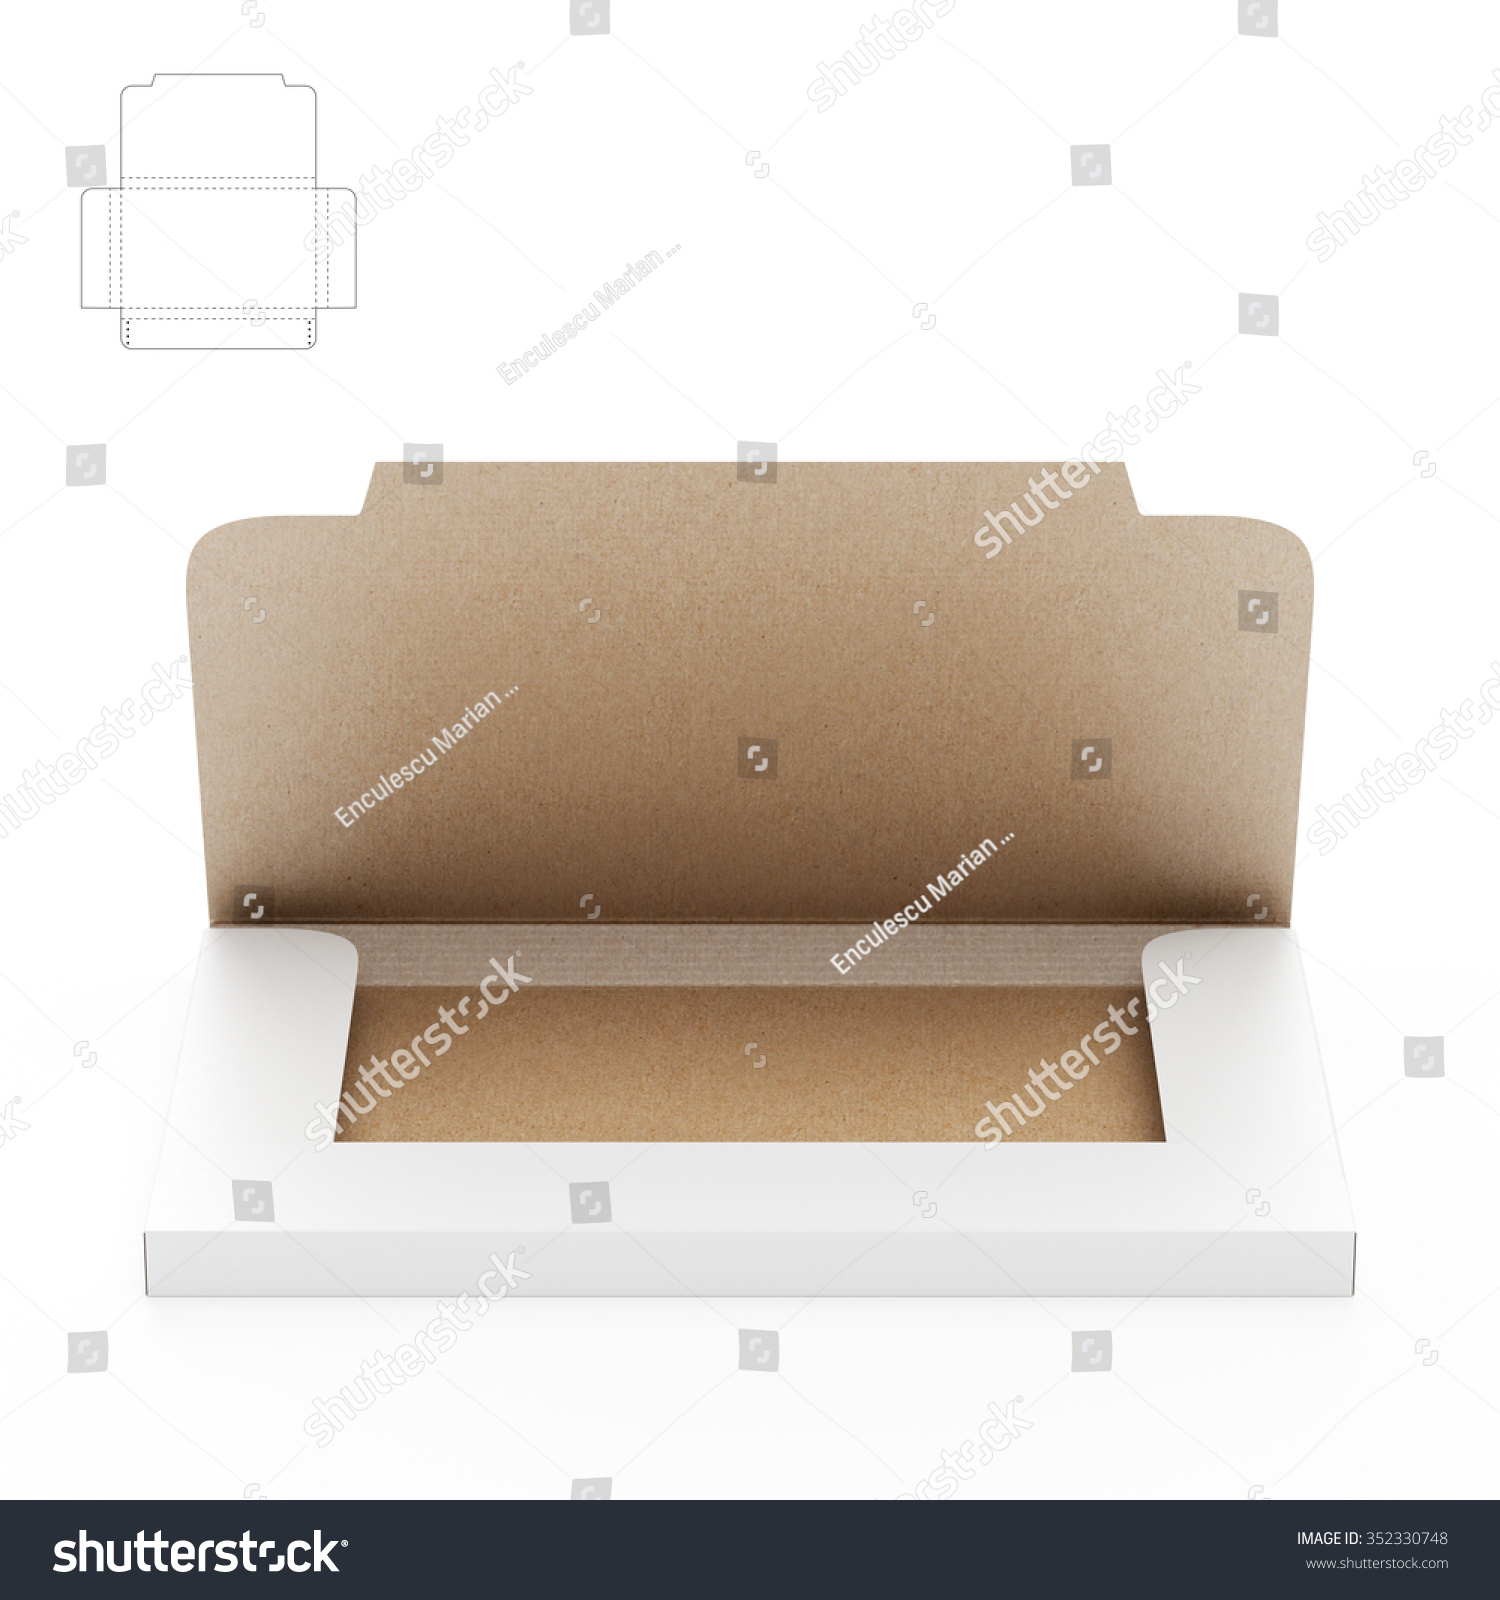 Small Compact Business Cards Sleeve Box Stock Illustration 352330748 ...